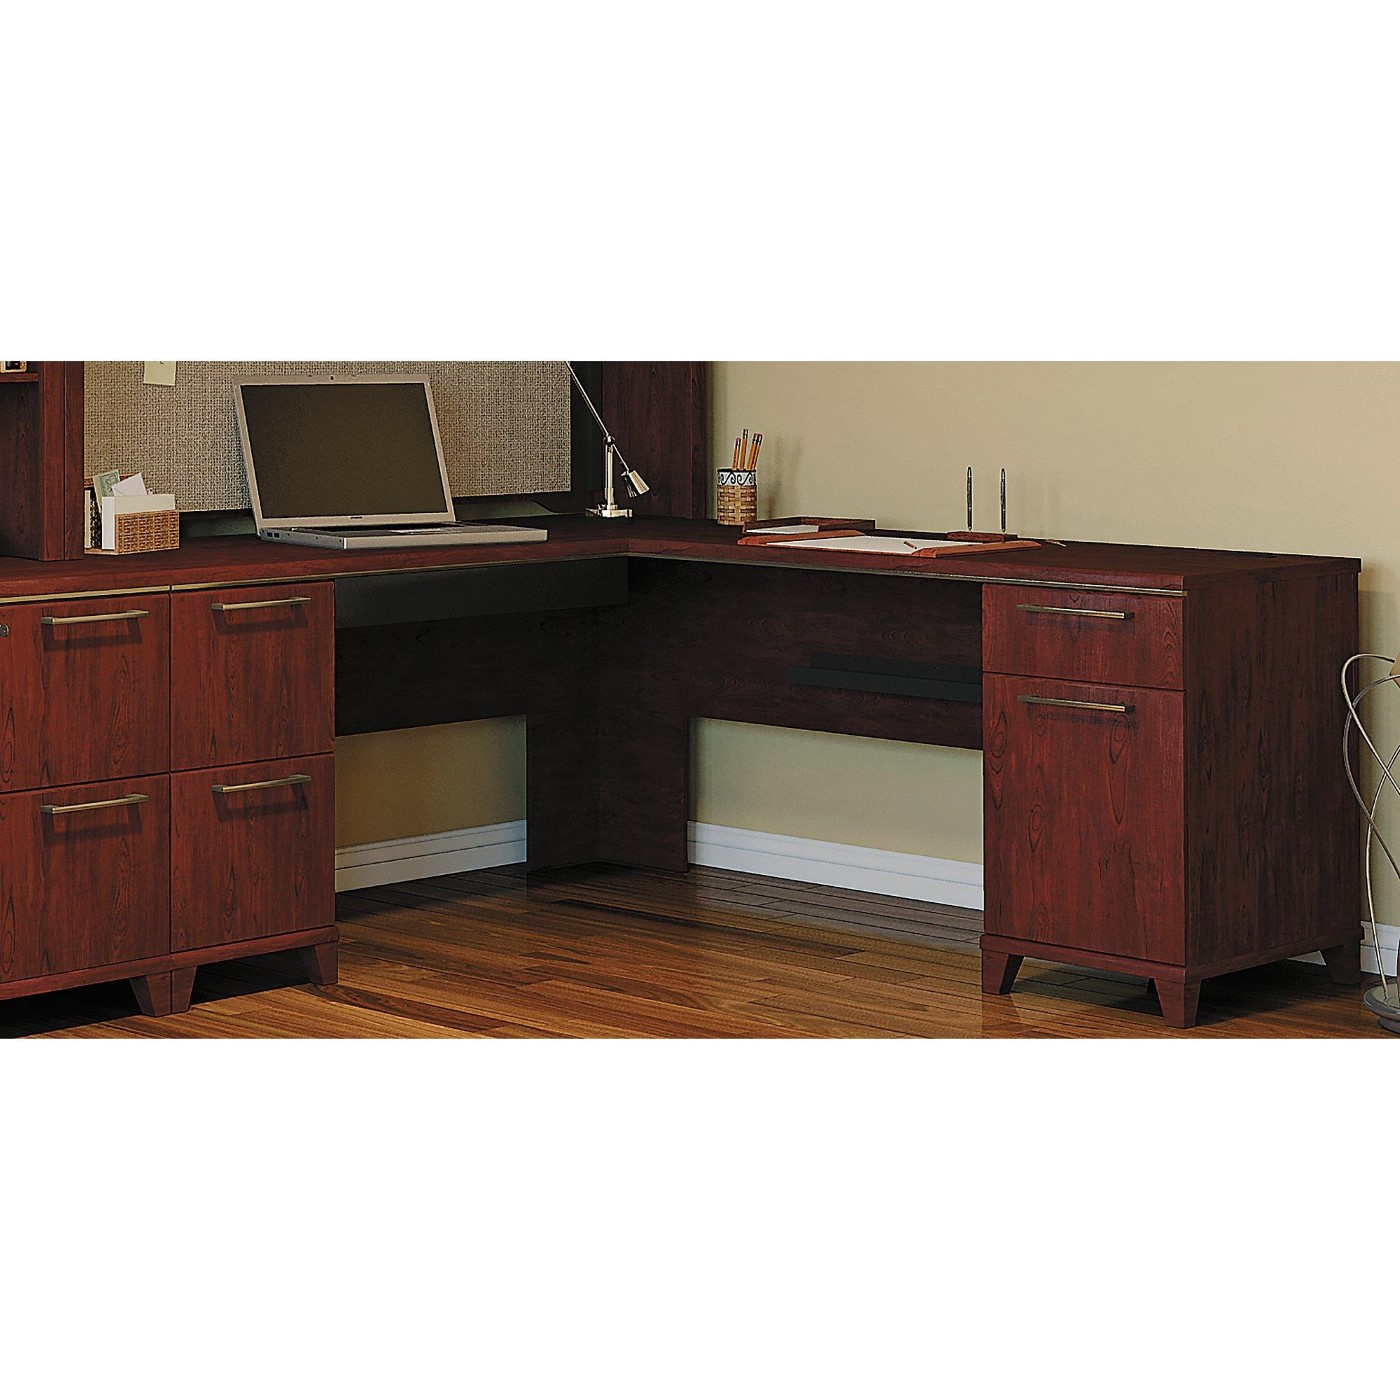 <b><font color=#c60>BUSH BUSINESS FURNITURE ENTERPRISE HARVEST CHERRY 72W X 72D L SHAPED DESK</b></font></font></b>